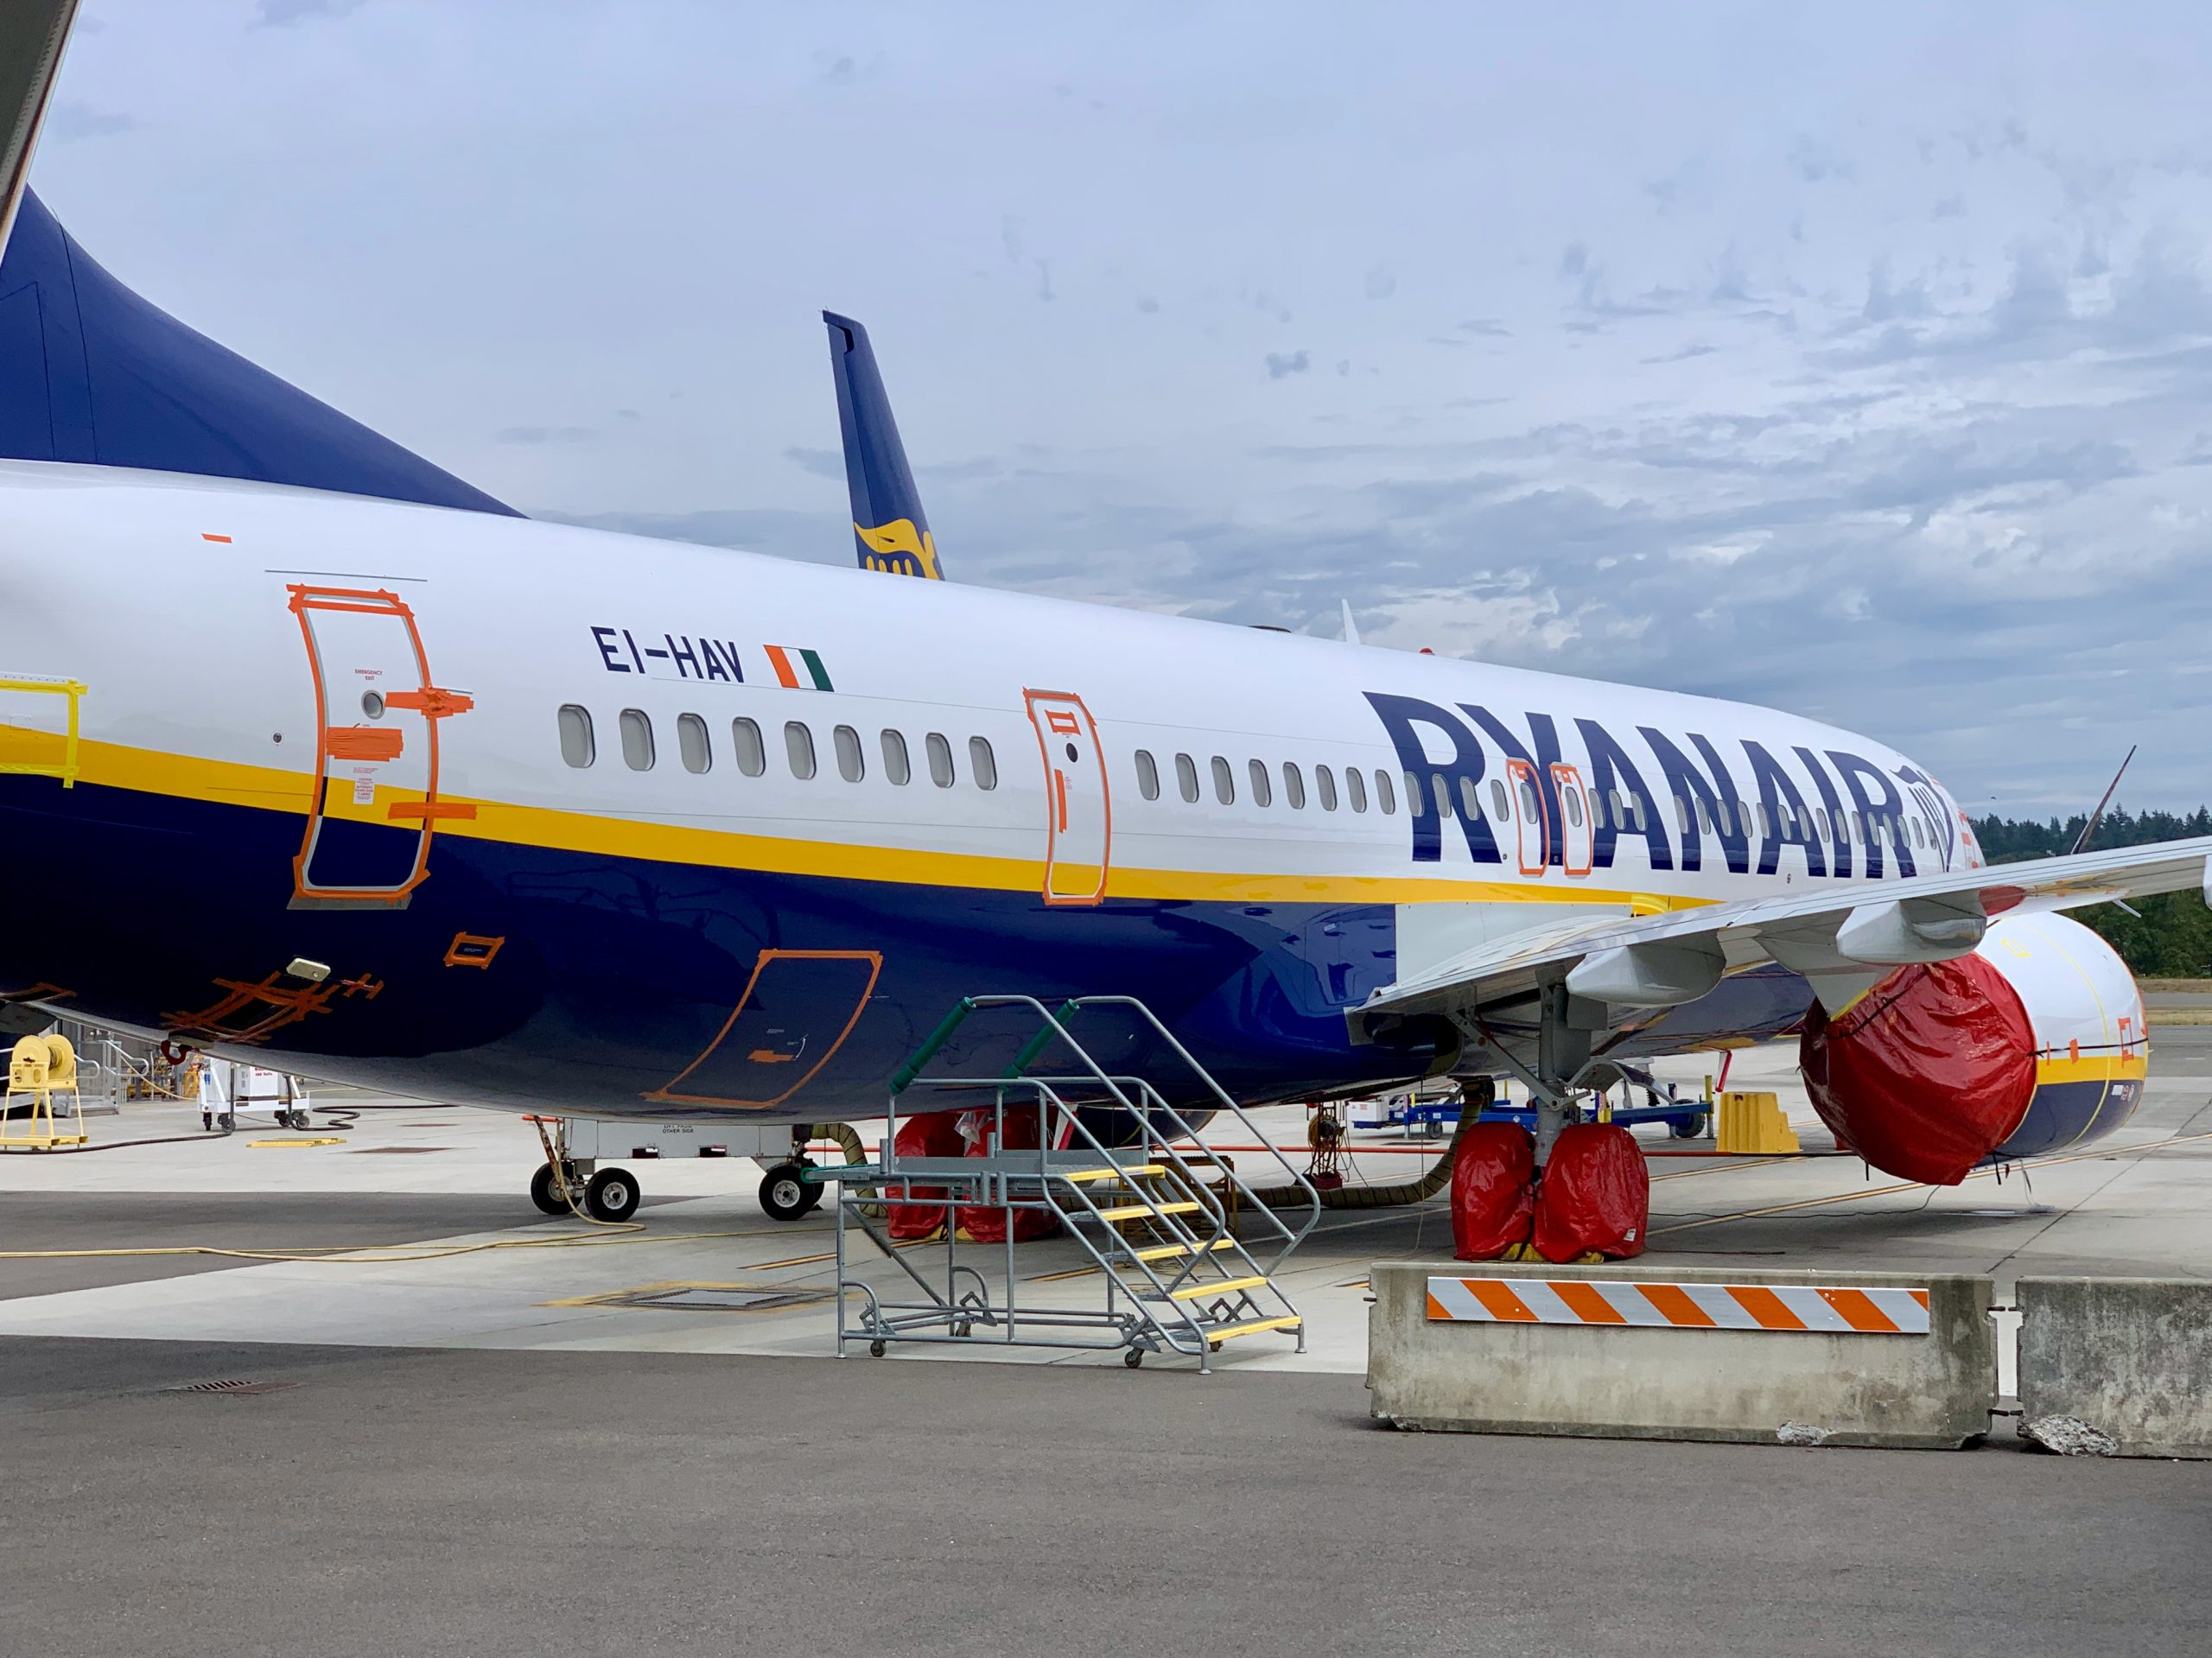 Ryanair hopes Boeing's troubled 737 MAX jet returns to service next month